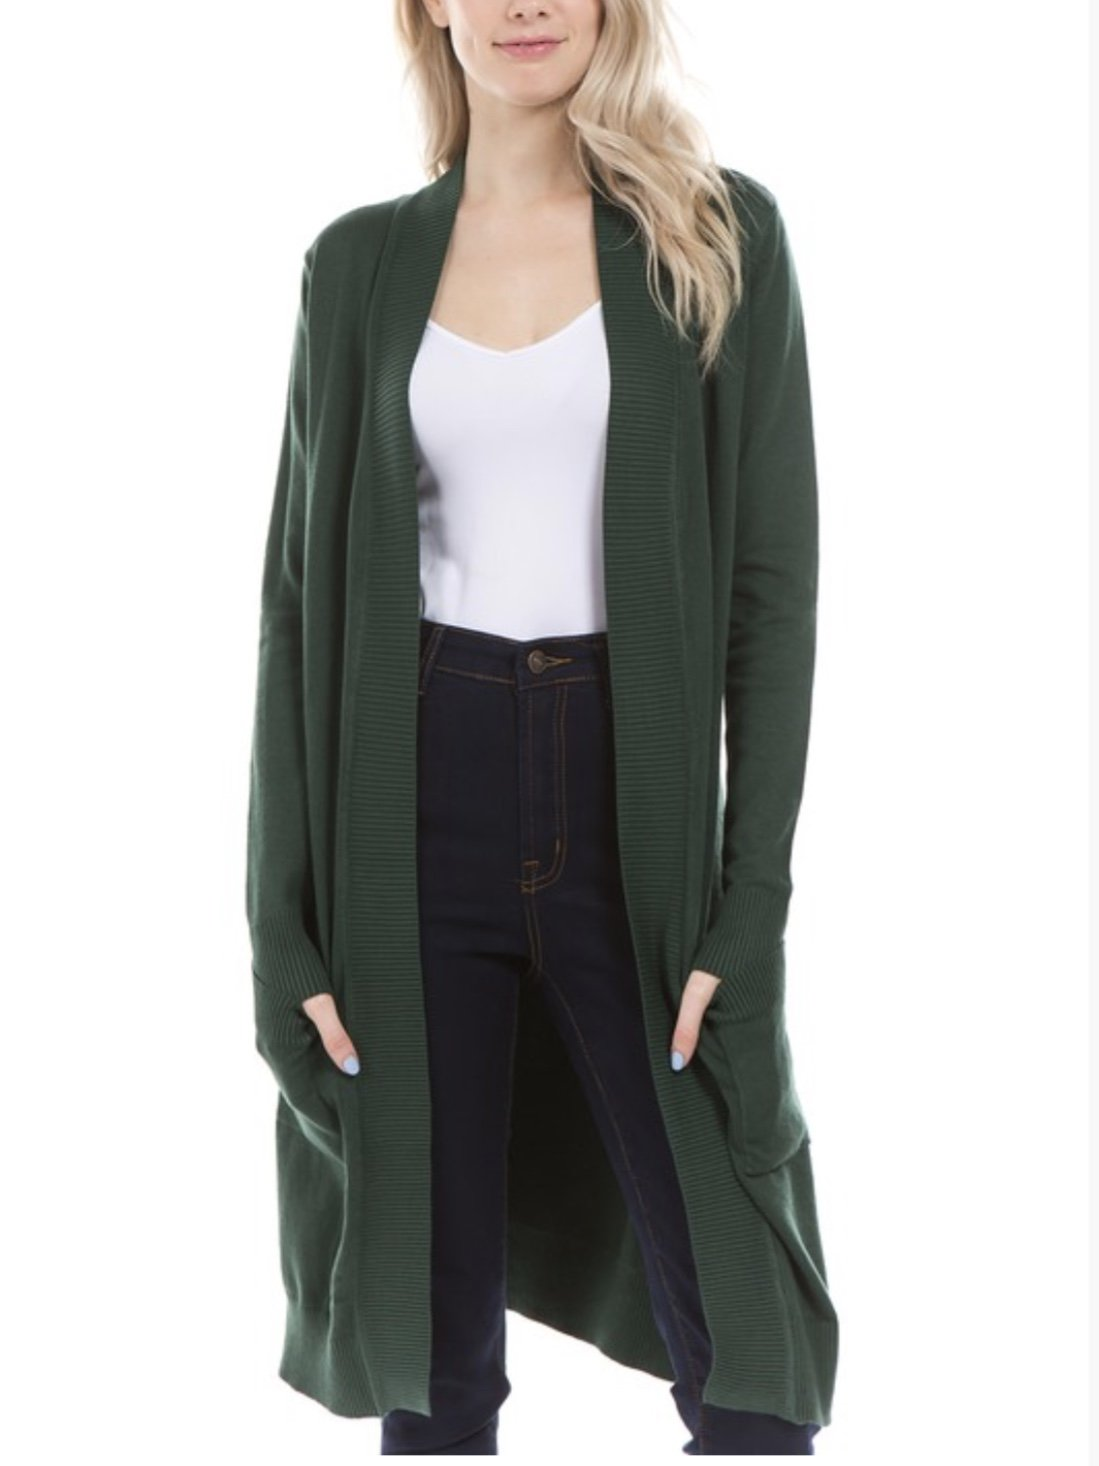 Classic Long Cardigan Sweater with Pockets